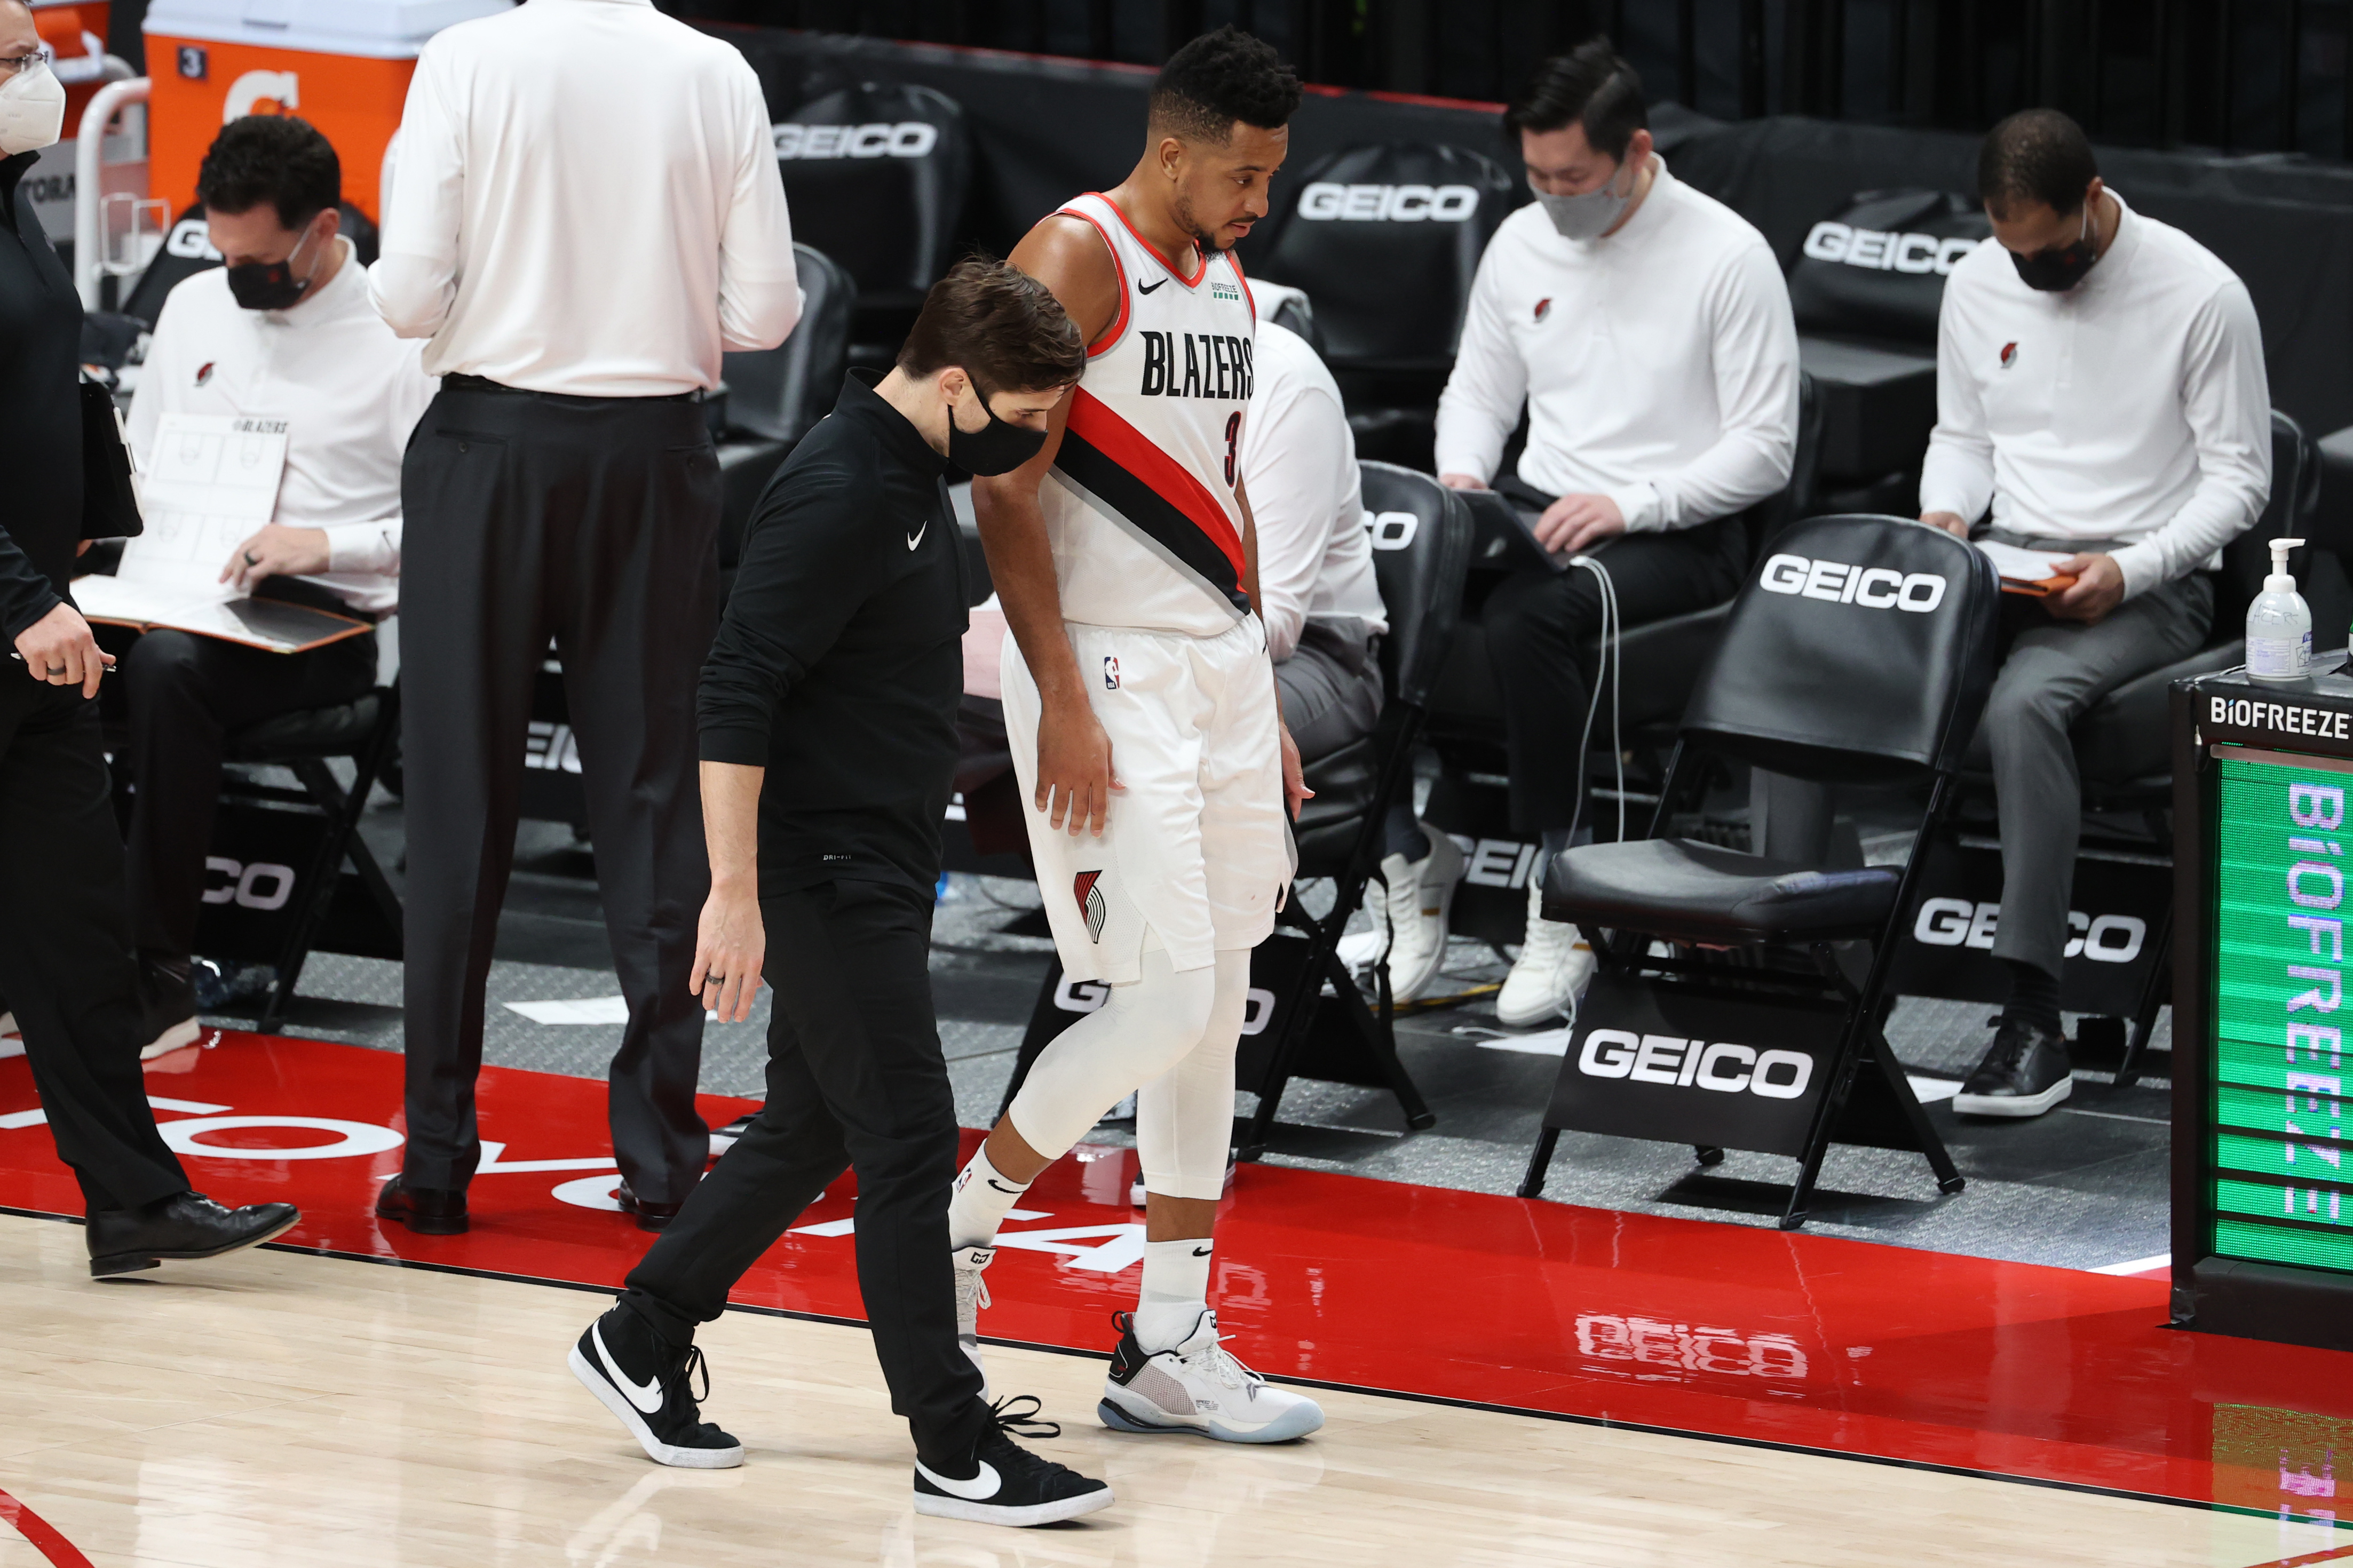 What Happened to CJ McCollum, and Why Isn't He Playing for the Portland Trail Blazers?